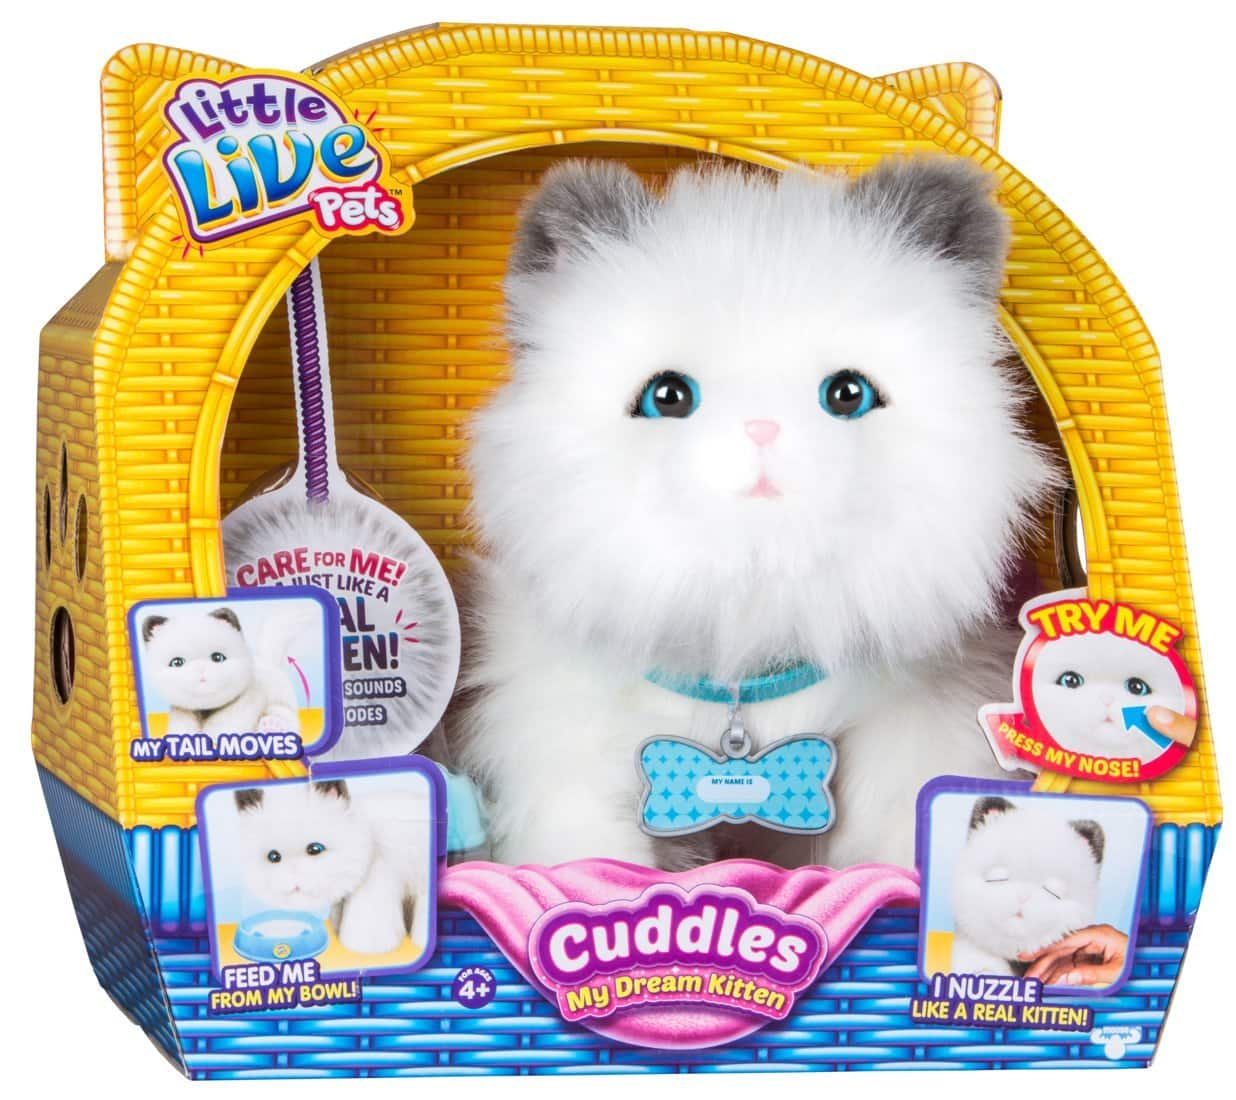 Little Live Pets Cuddles My Dream Kitten - 1 for $33.74, 2 for $50.61 @ Amazon with FSSS / Prime Shipping